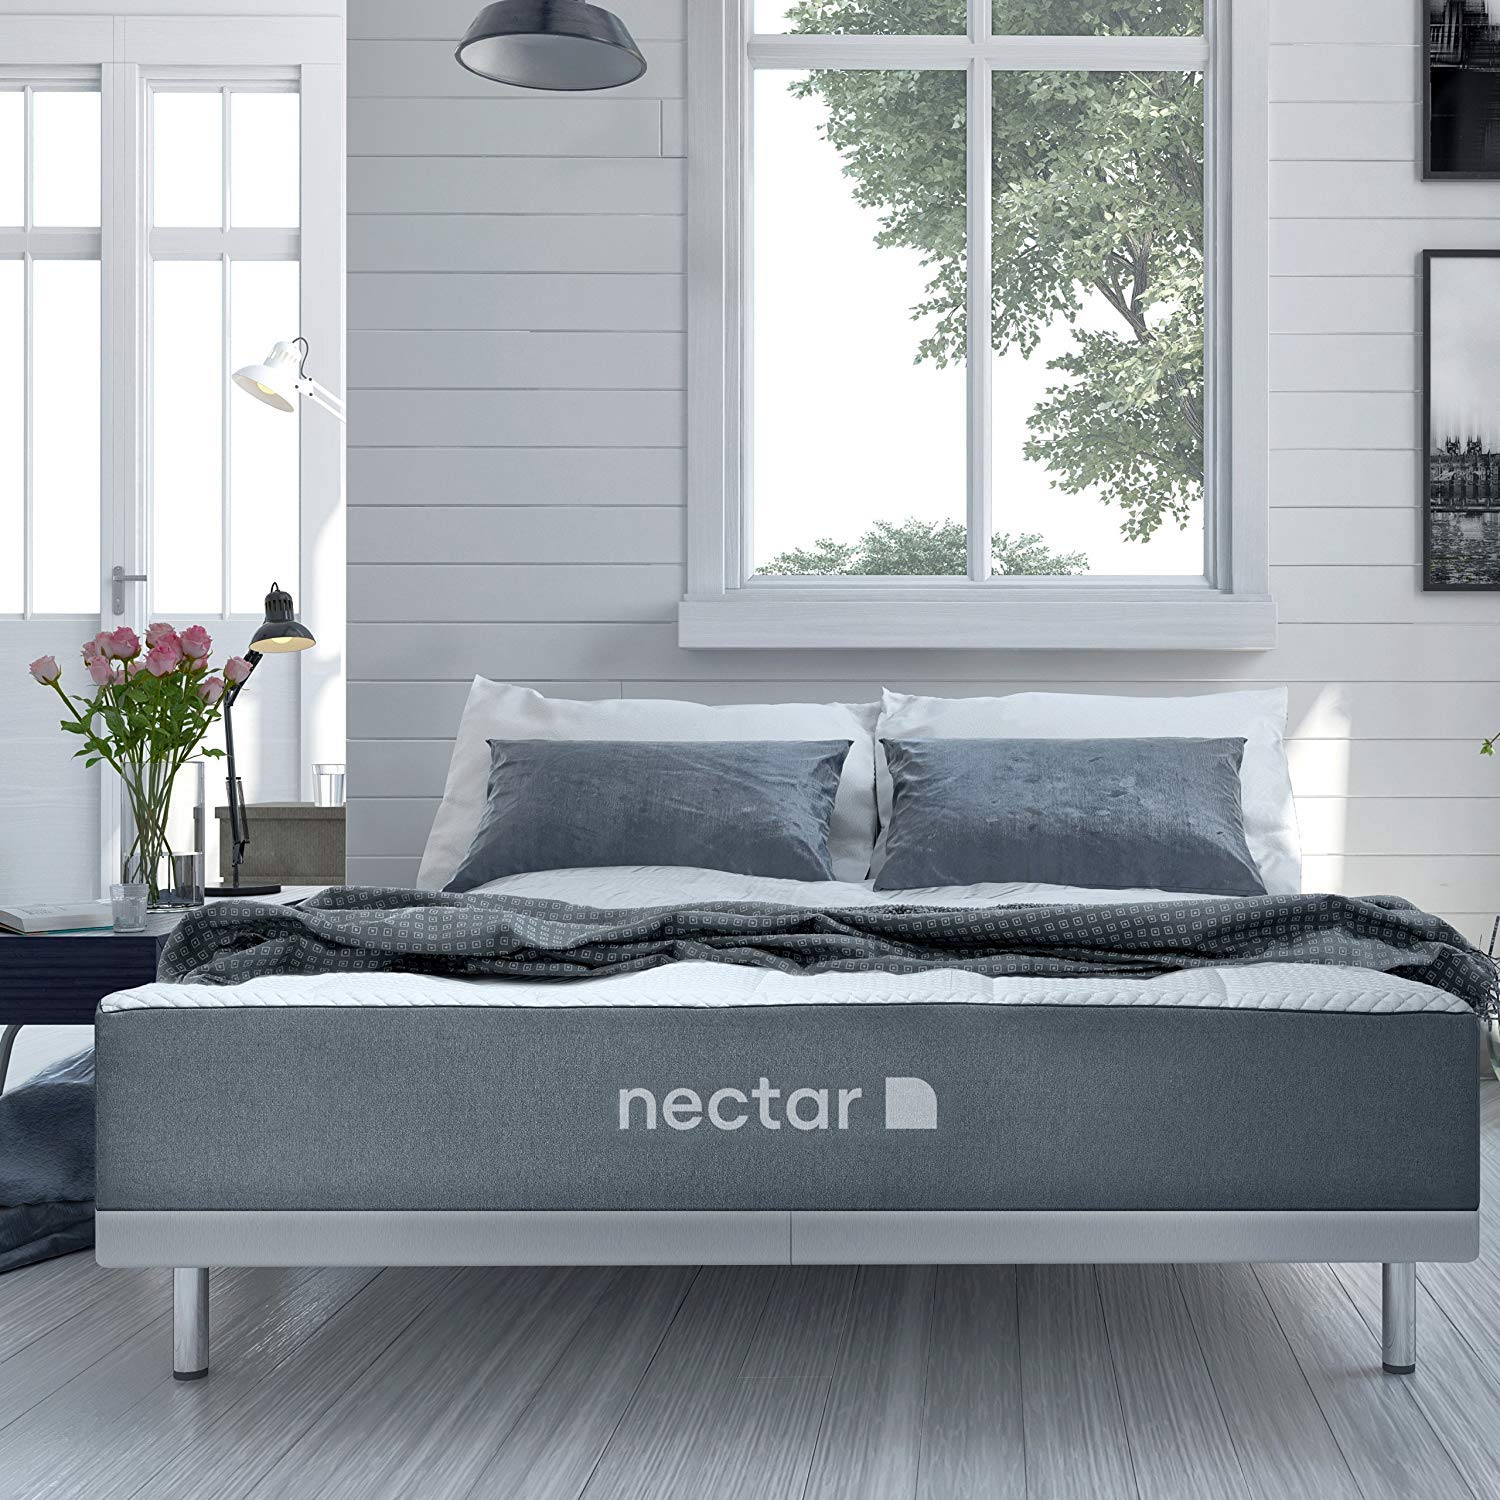 Instructions to buy mattresses for platform bed